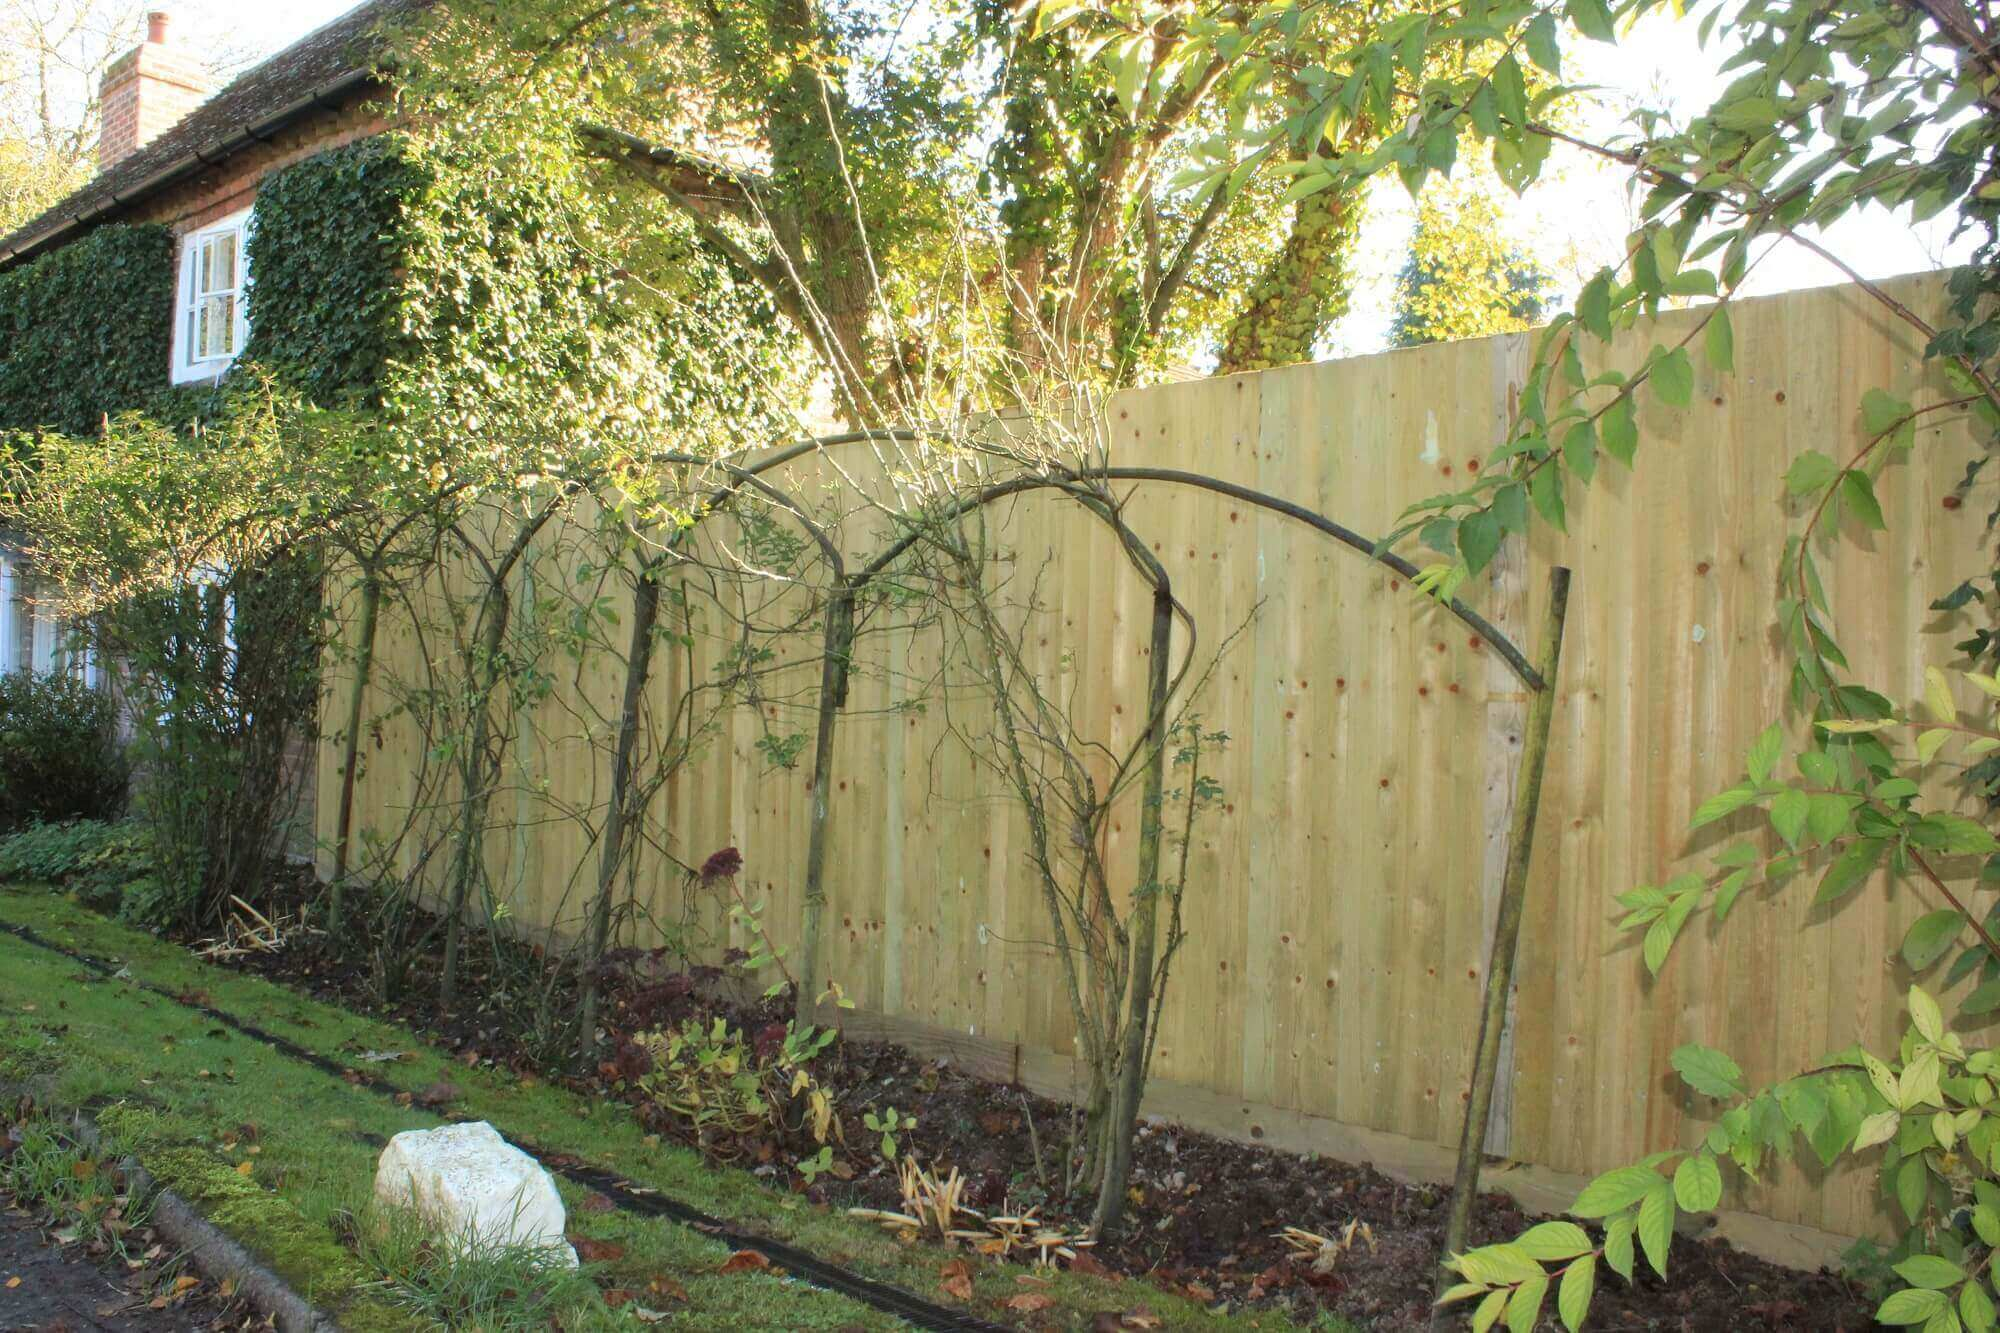 Closeboard Fencing Jacksons Fence Gate For Transitional Putting Up Electric Common Names This Style Of Include Featheredge Featherboard Or Boards Though The Product Is Identical No Matter What Term Used